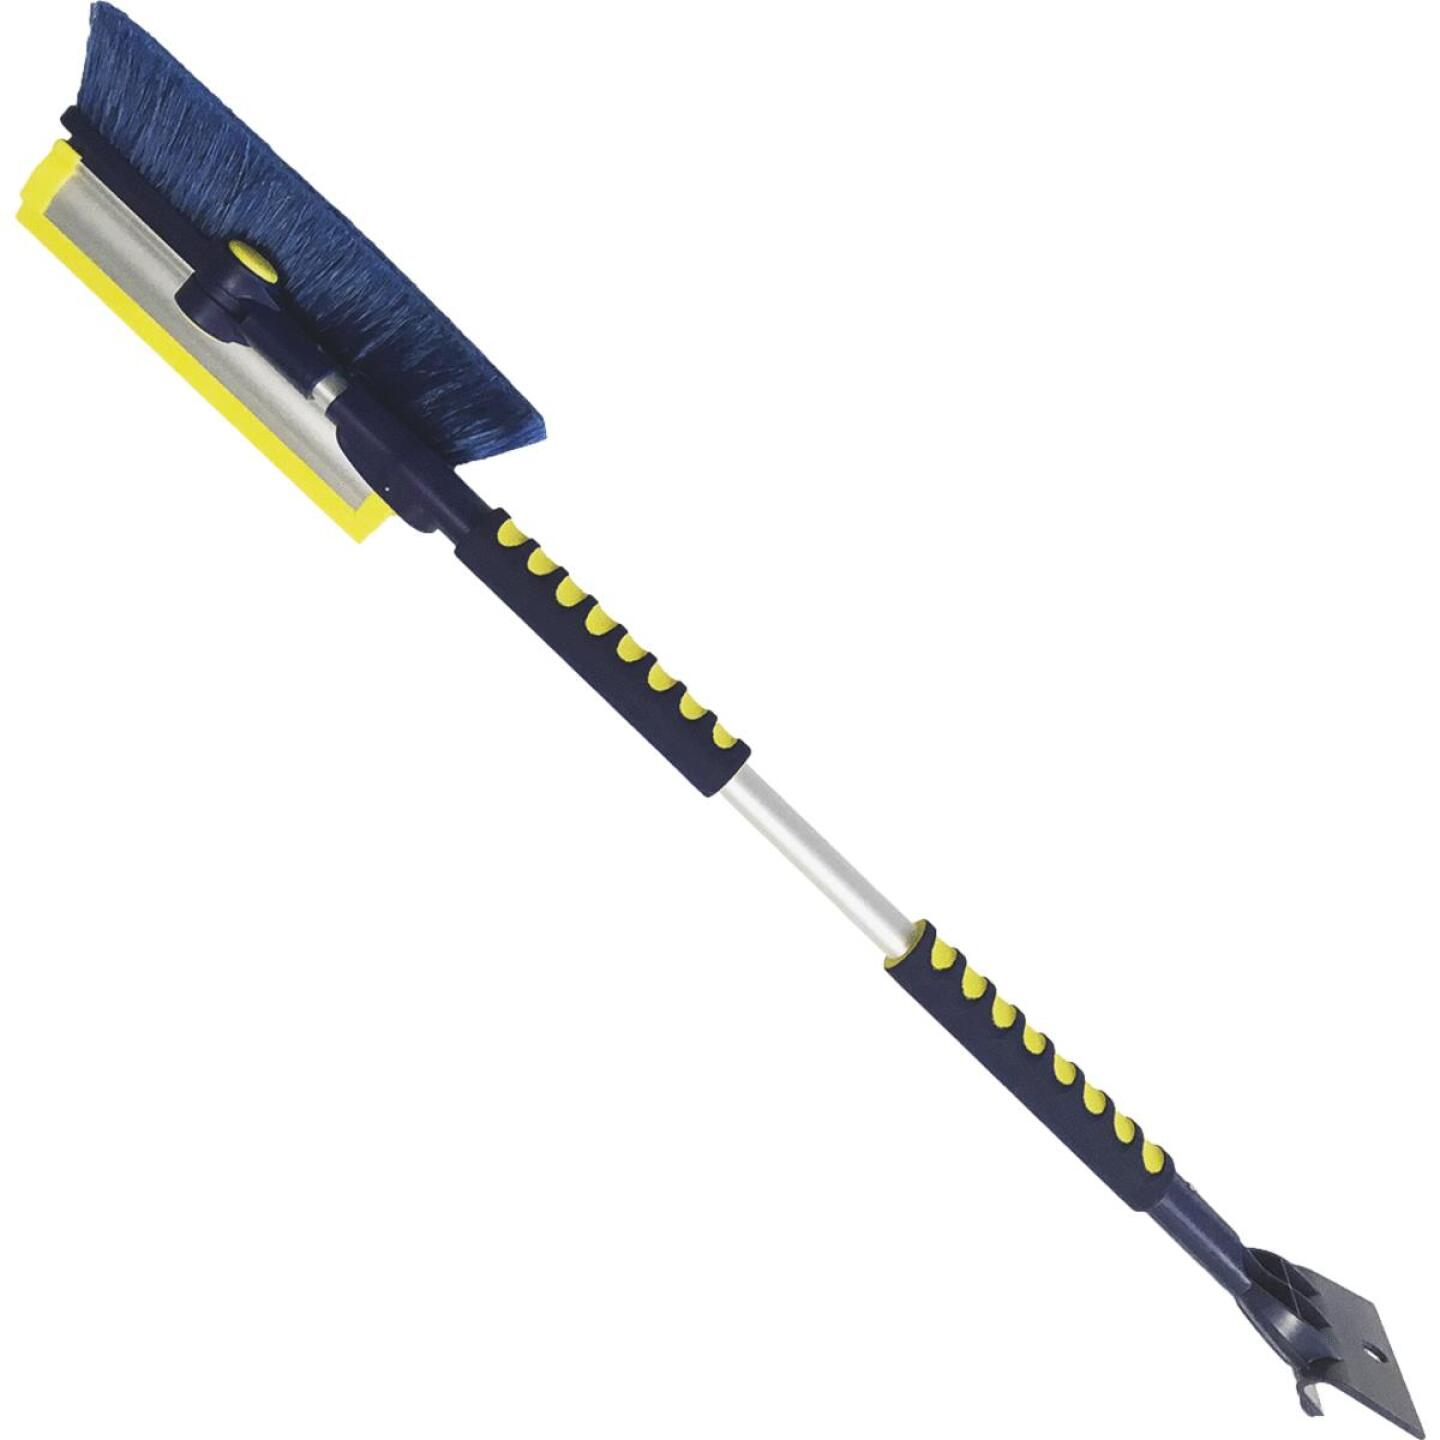 Michelin Avalanche 63 In. Steel Multi-Functional Telescopic Snowbrush and Ice Scraper Image 1